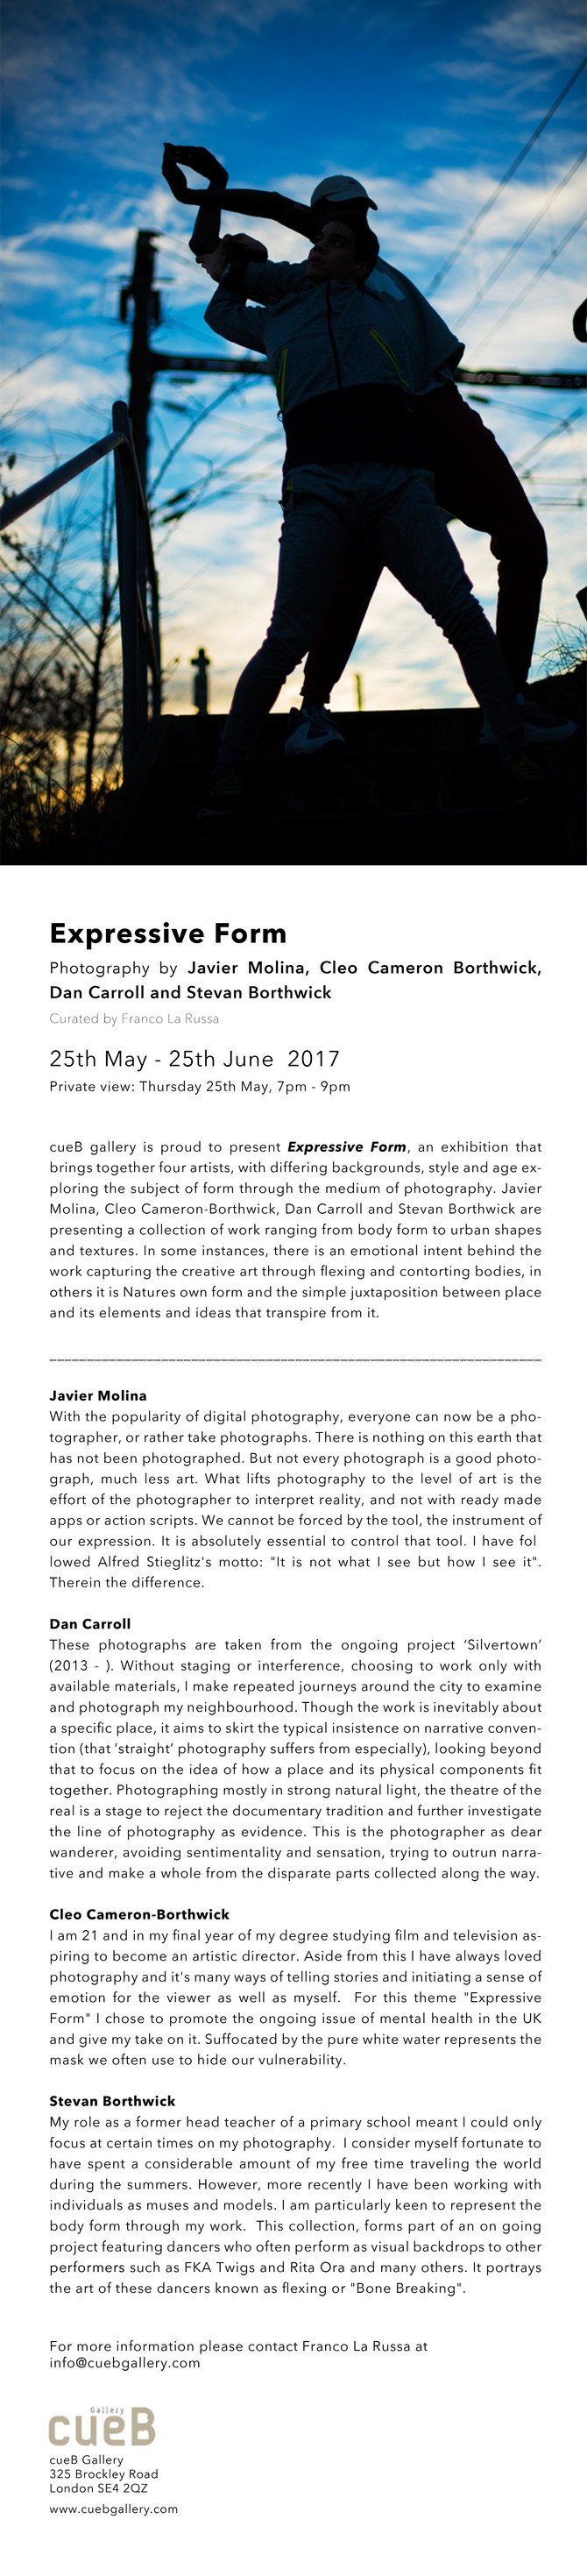 'Expressive Form' exhibition